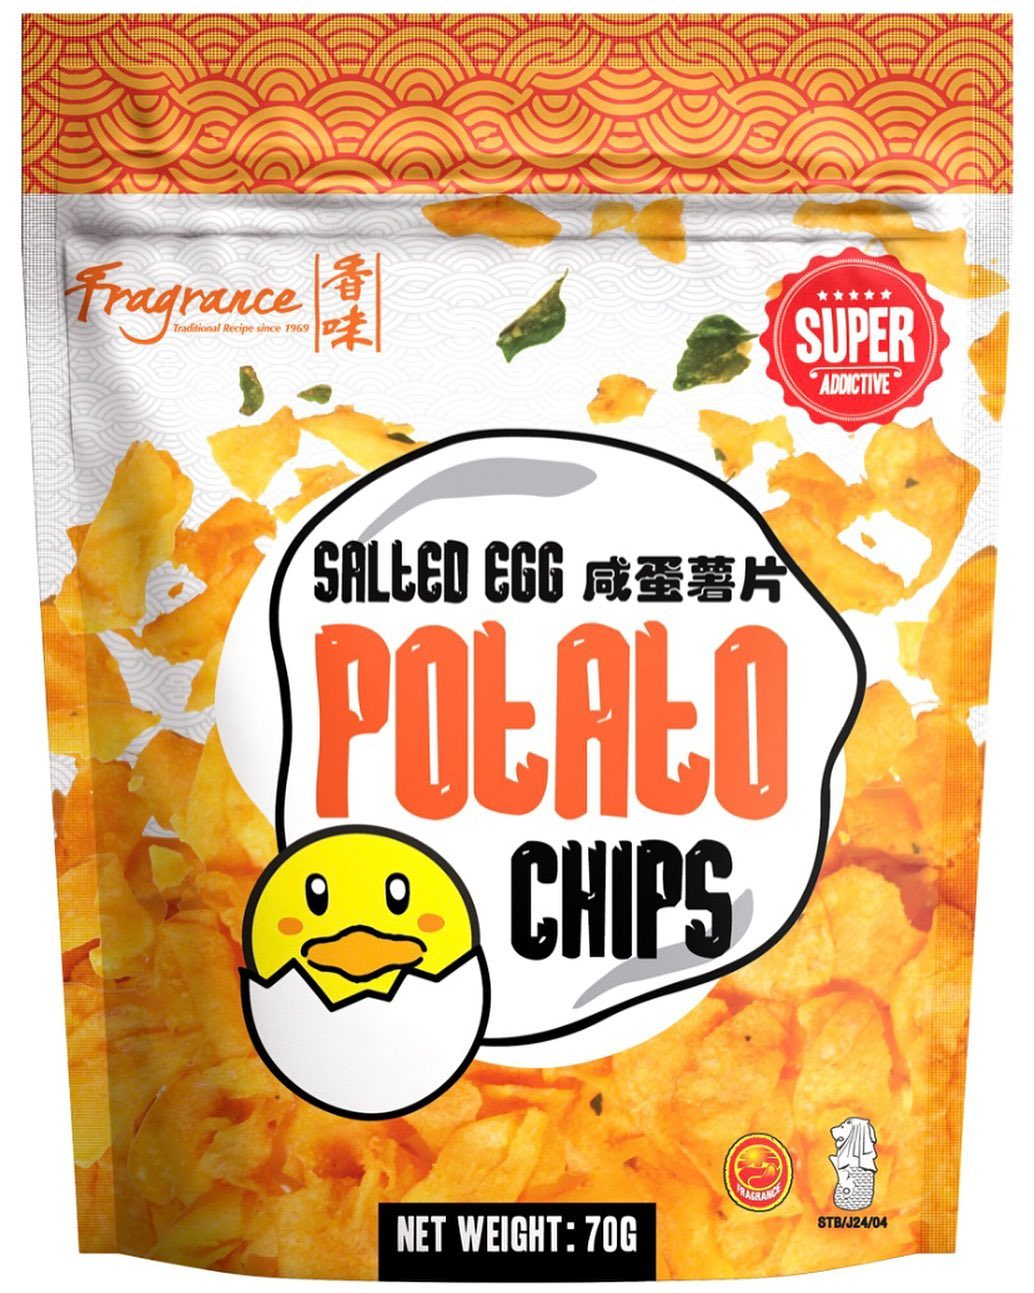 Fragrance Salted Egg Potato Chips